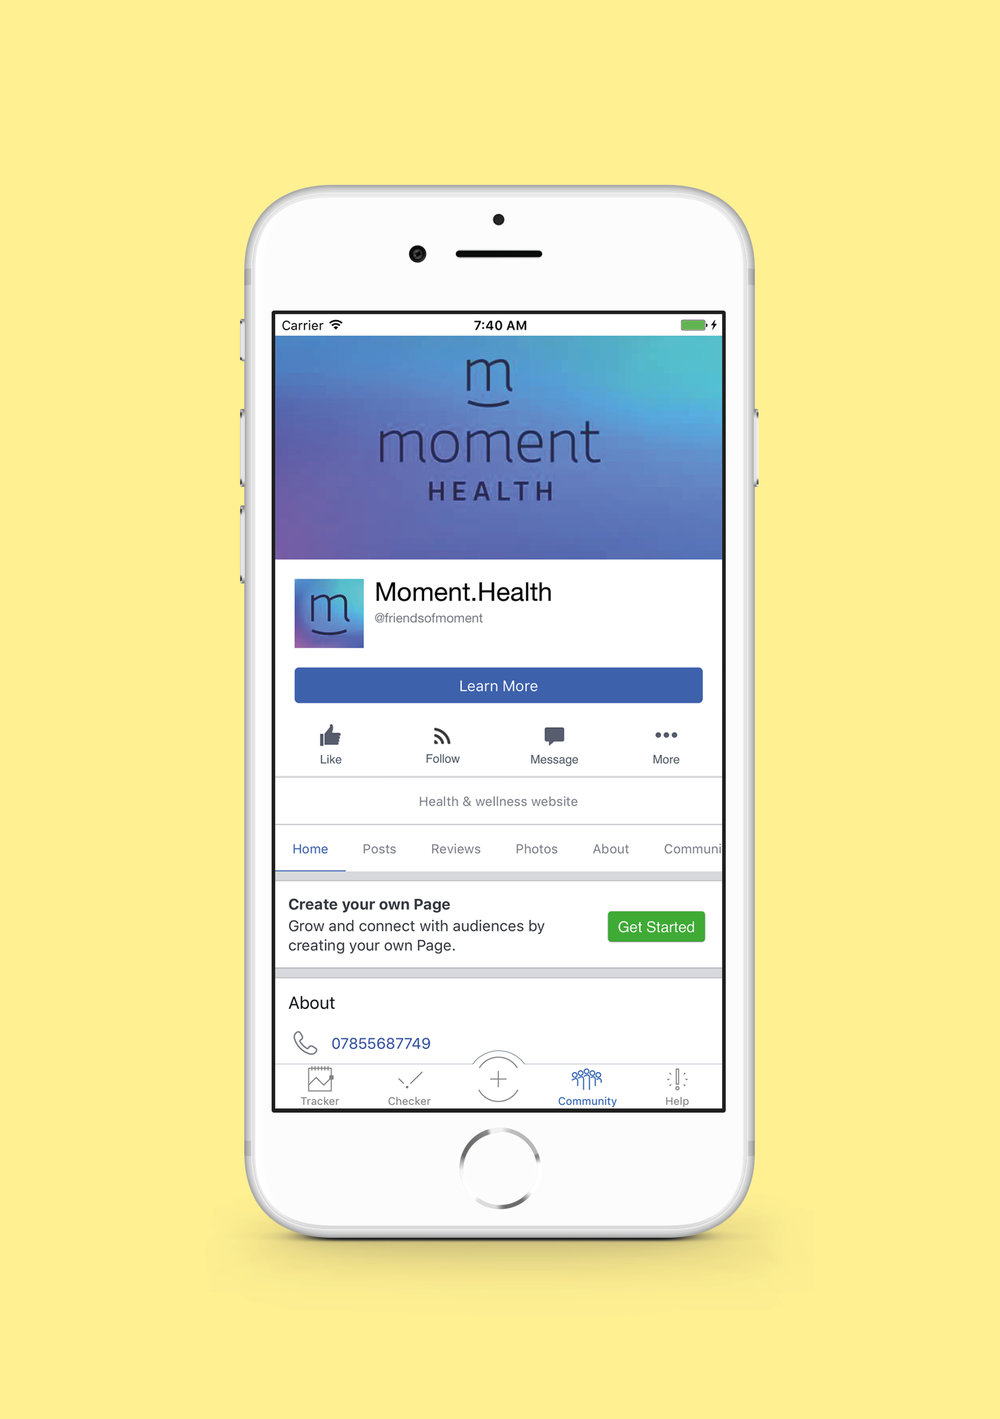 moment-health-app-screen-visuals-5.jpg